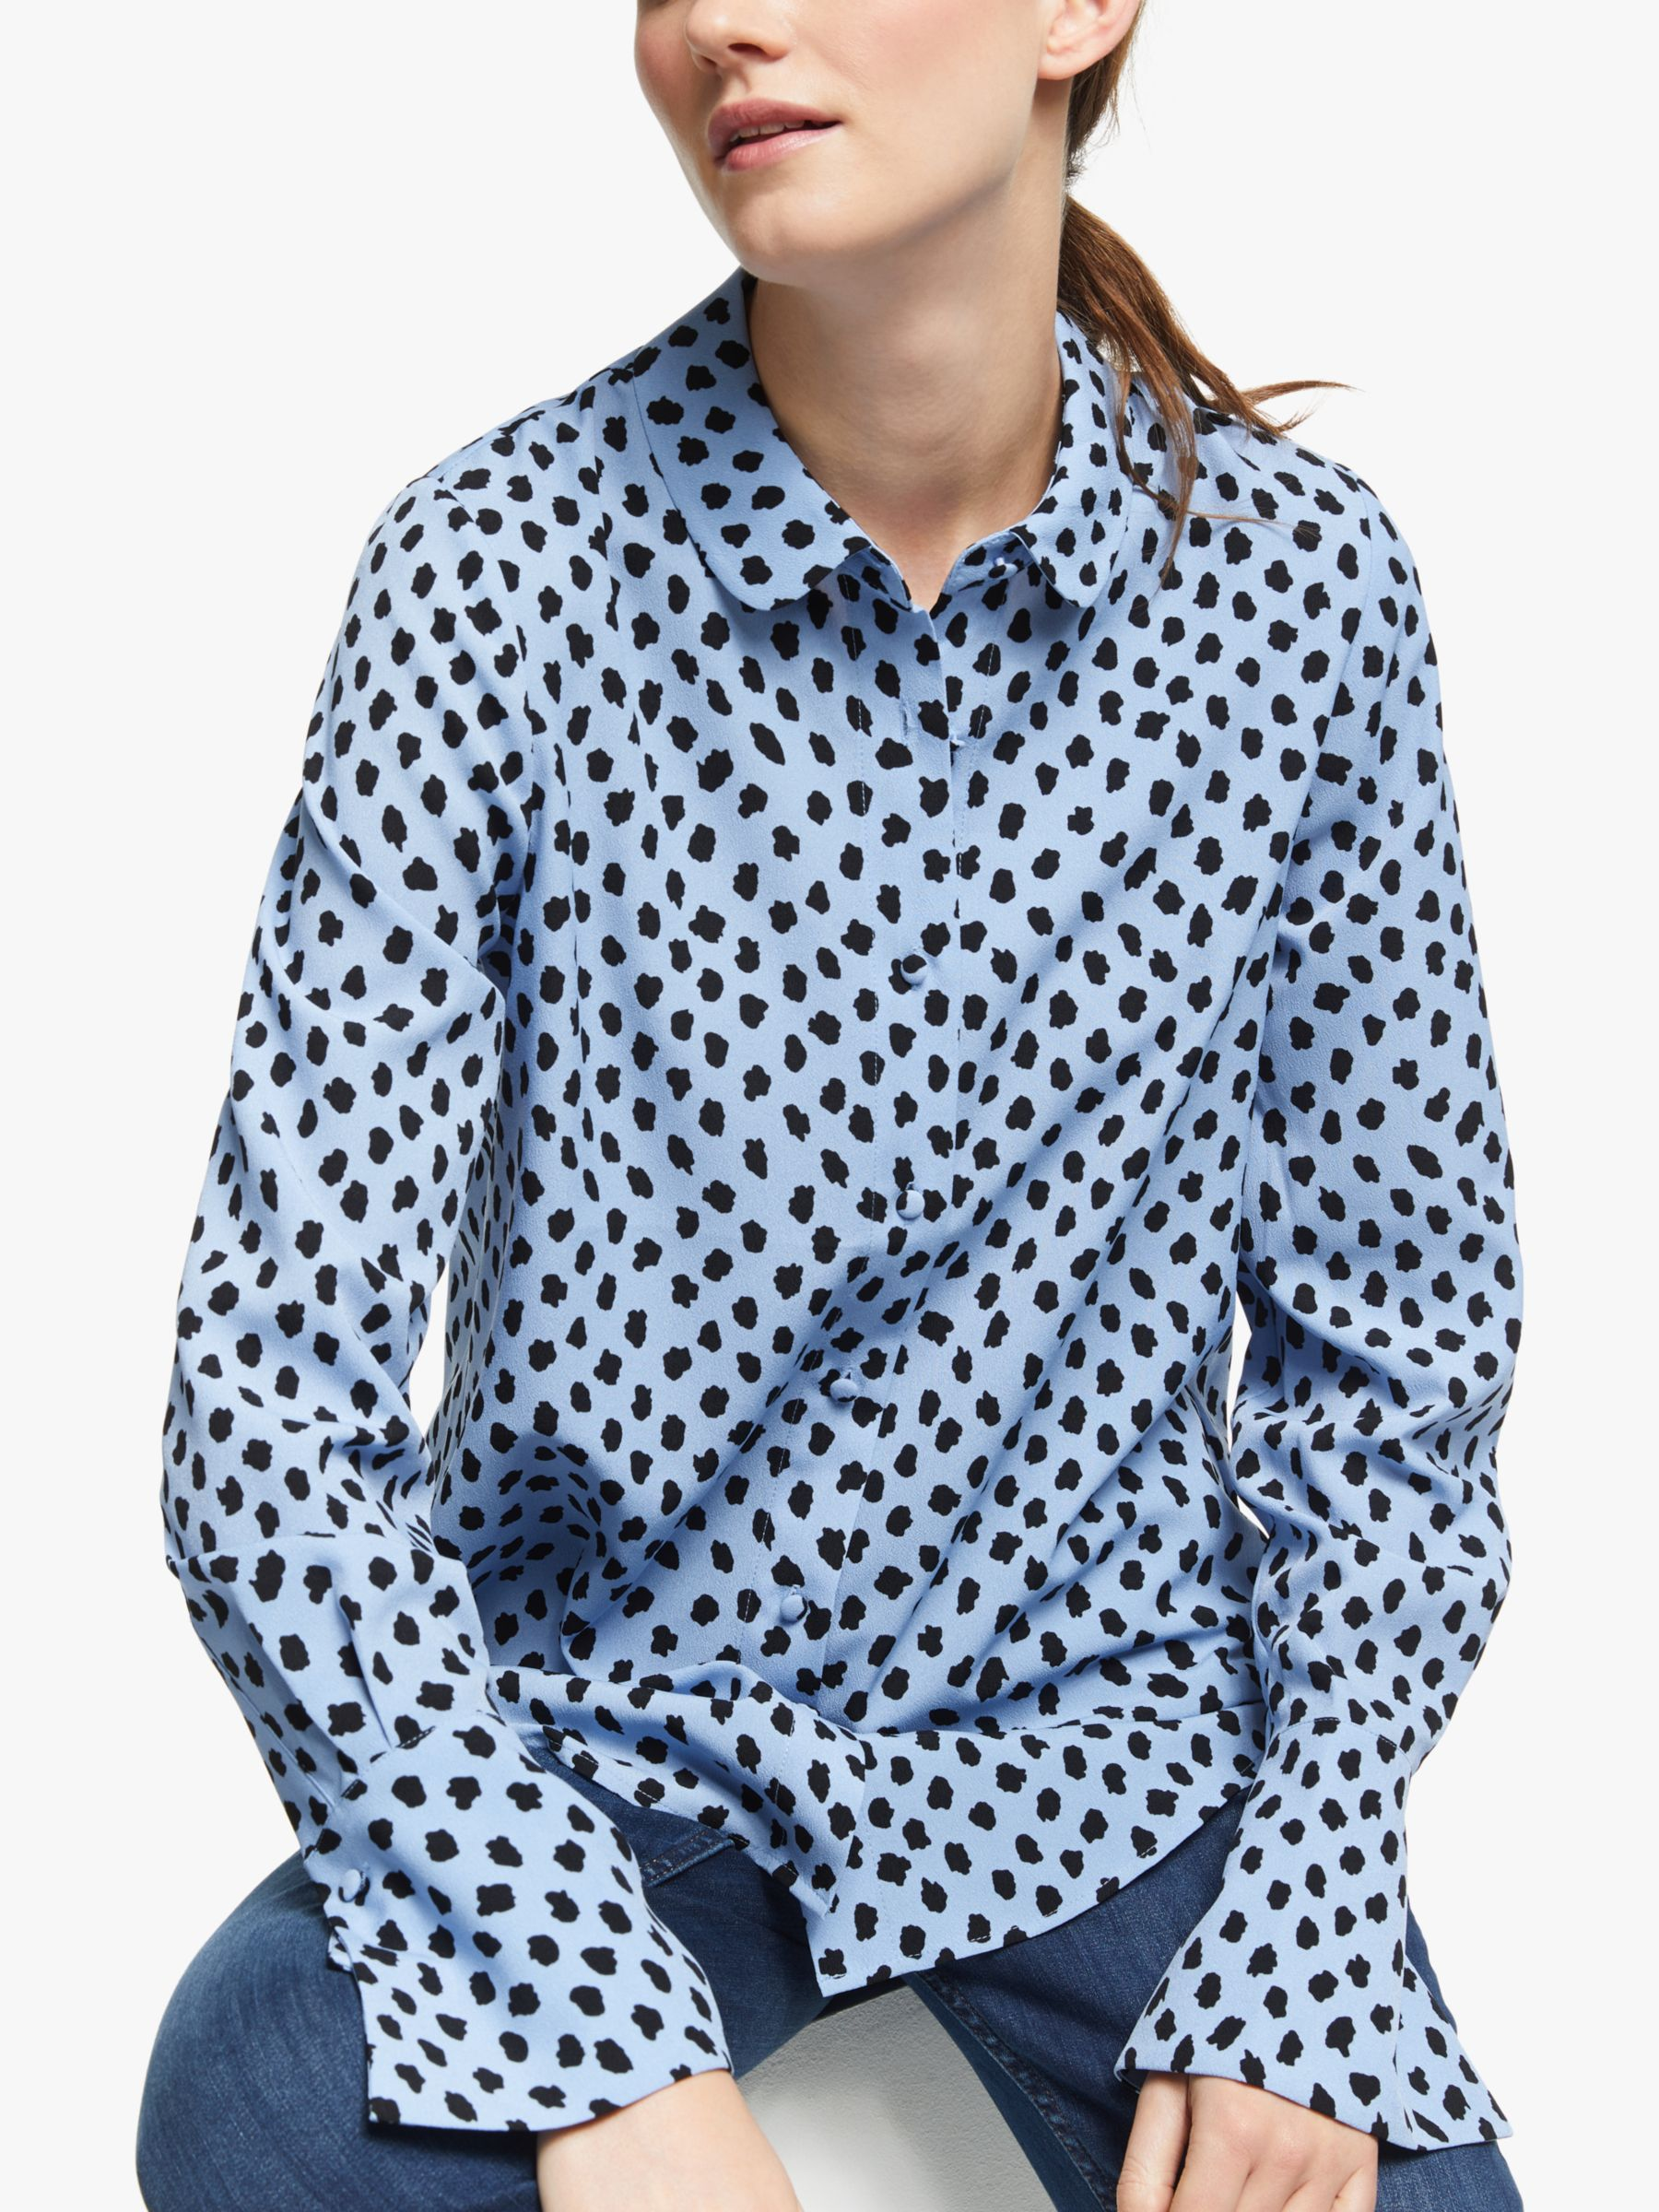 Essentiel Antwerp Essentiel Antwerp Spot Trumpet Cuff Shirt, Chambray